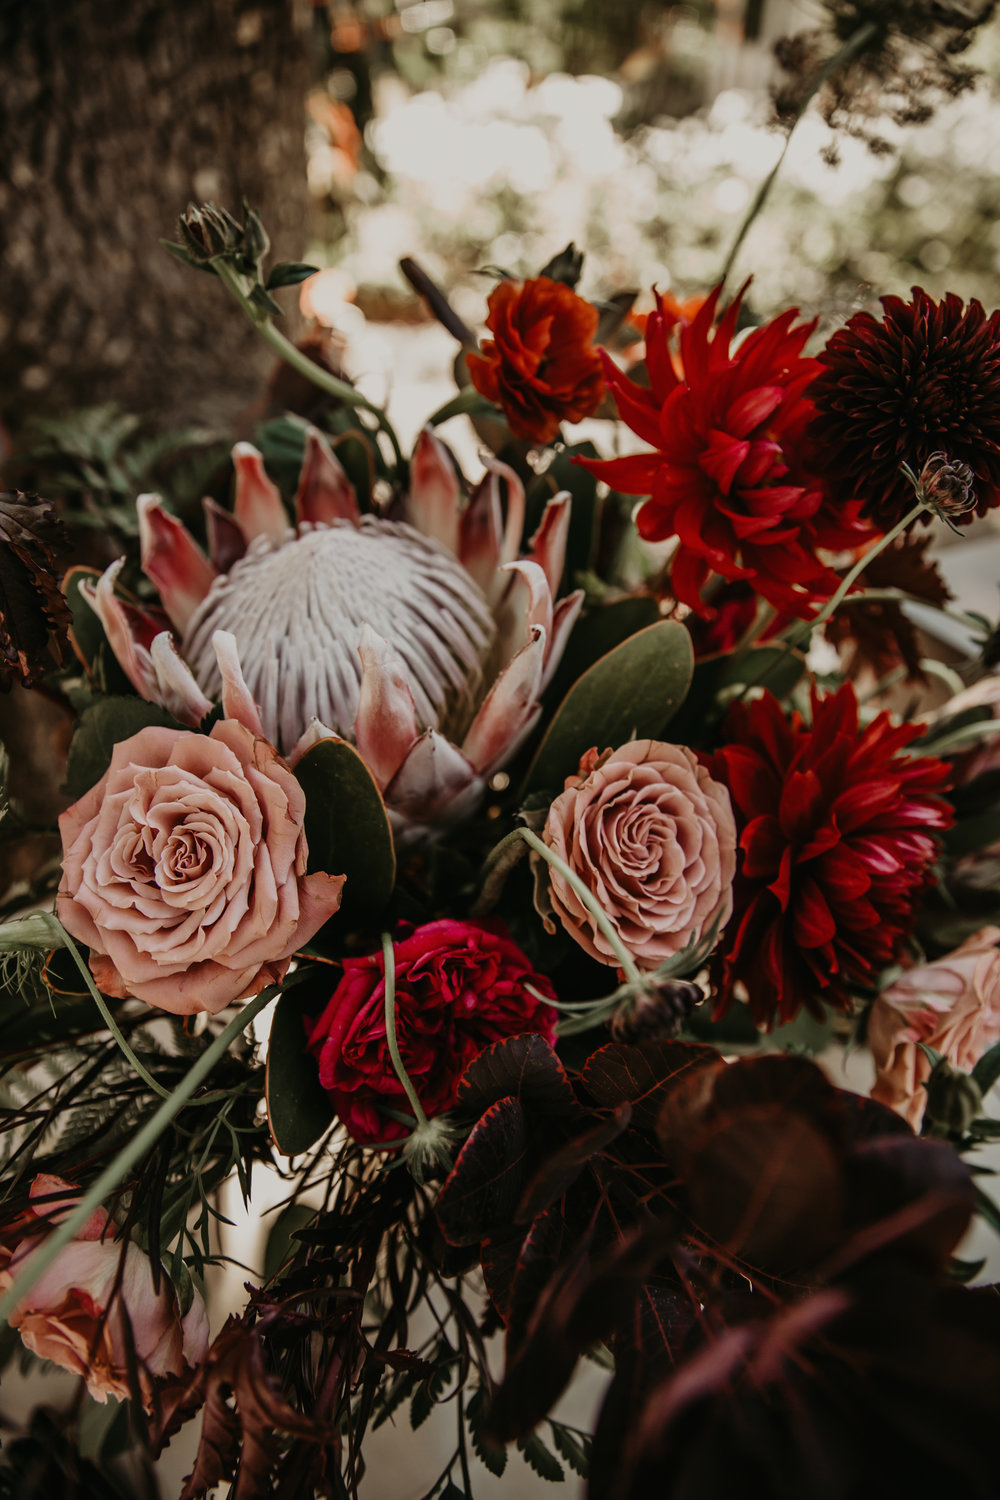 Moody floral palette with King Protea, Dahlias, Agonis, and Garden Roses by Venn Floral at Beltane Ranch. Photographed by Vera Frances.